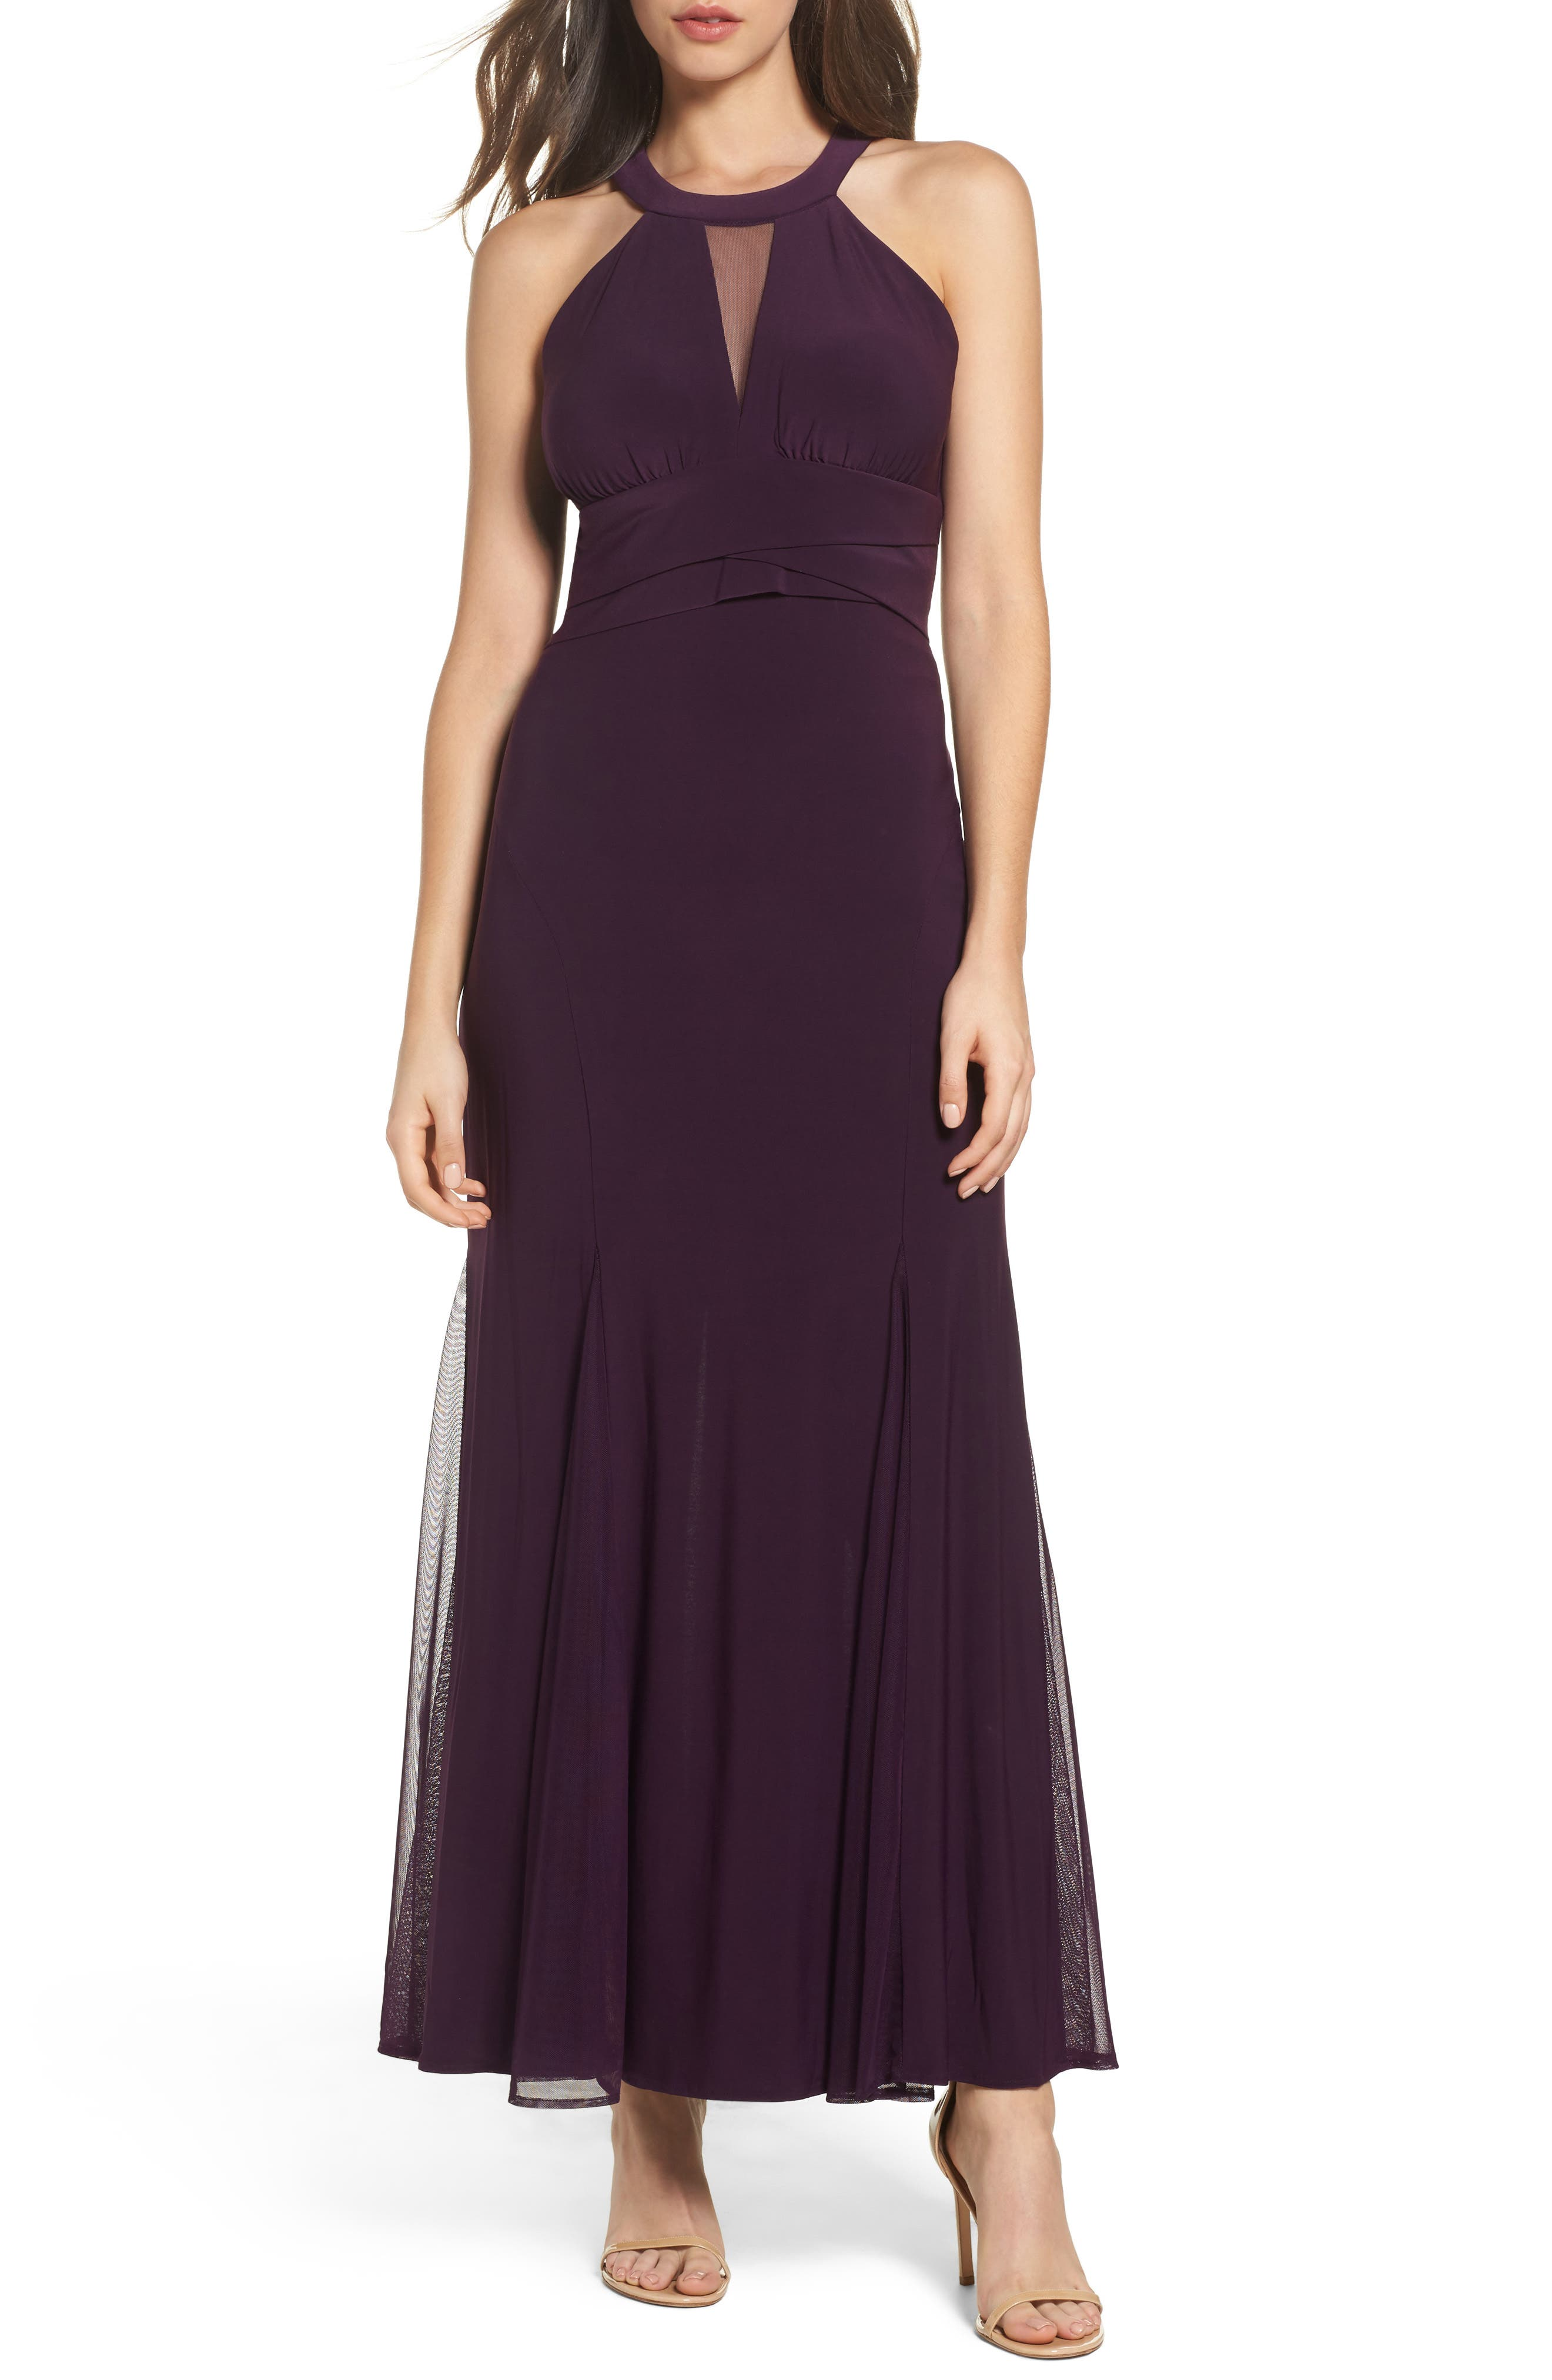 Mesh Insert Halter Neck Mermaid Dress,                             Main thumbnail 1, color,                             Plum